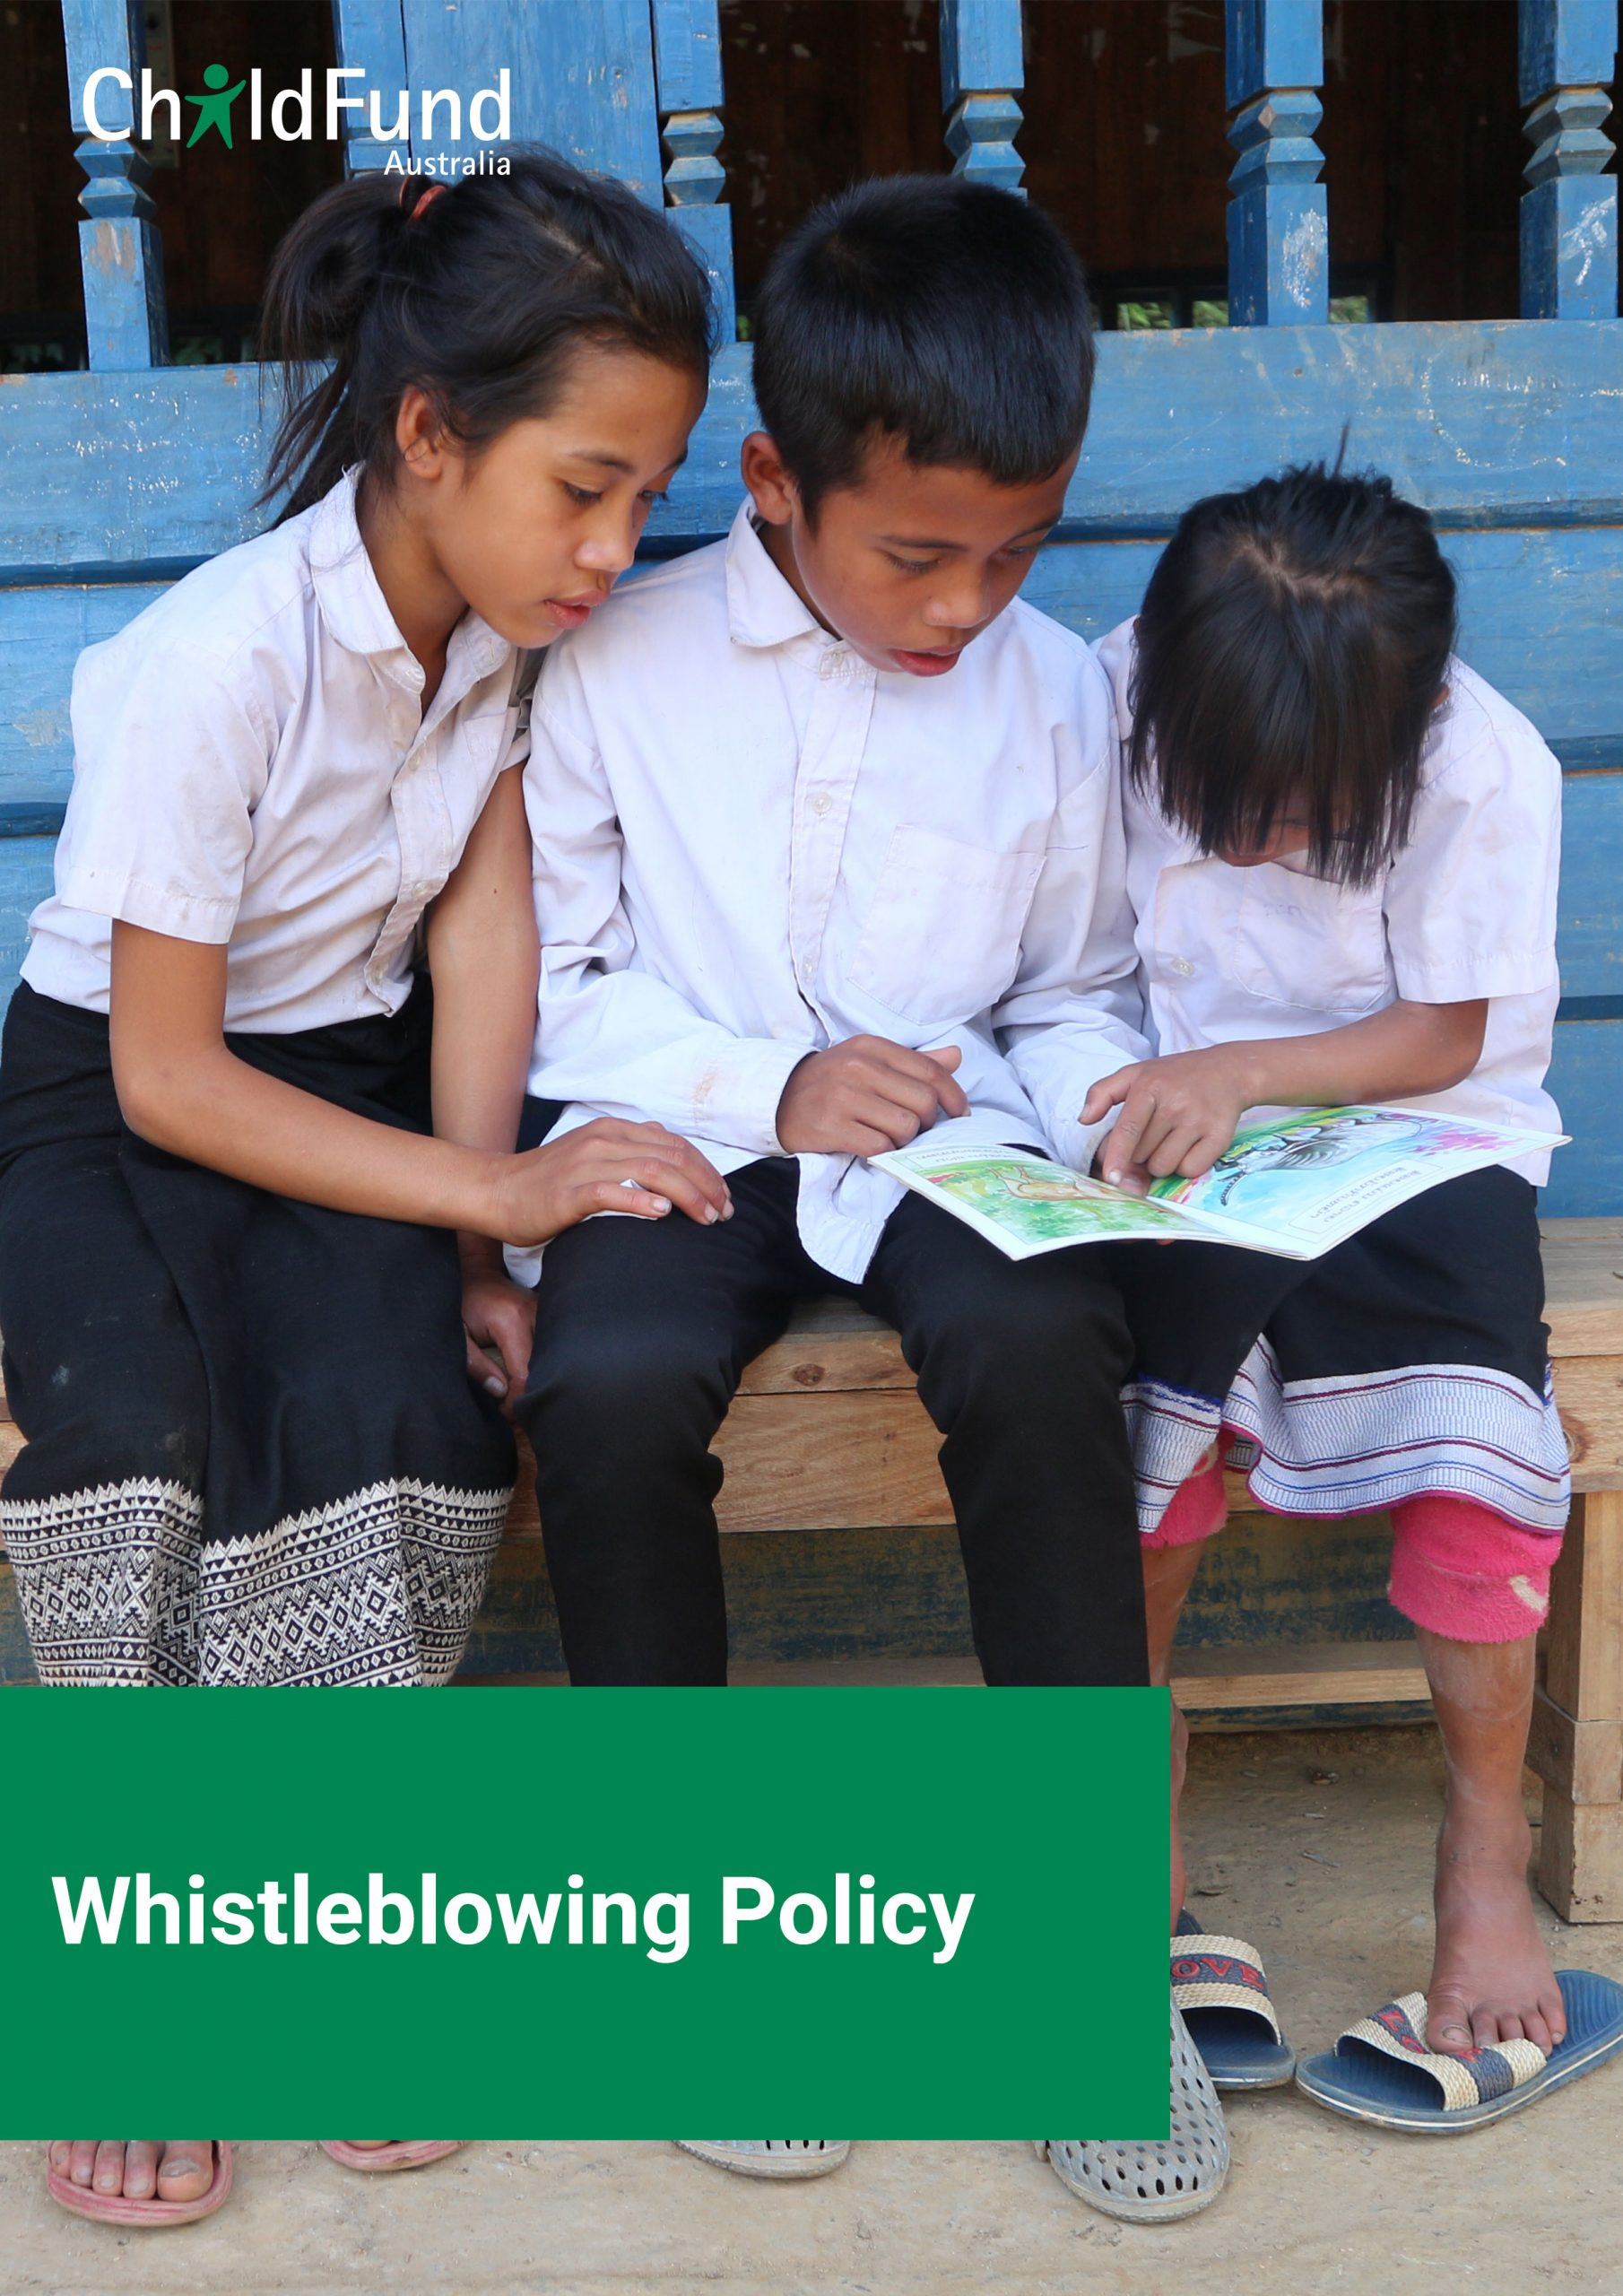 Whistleblowing Policy